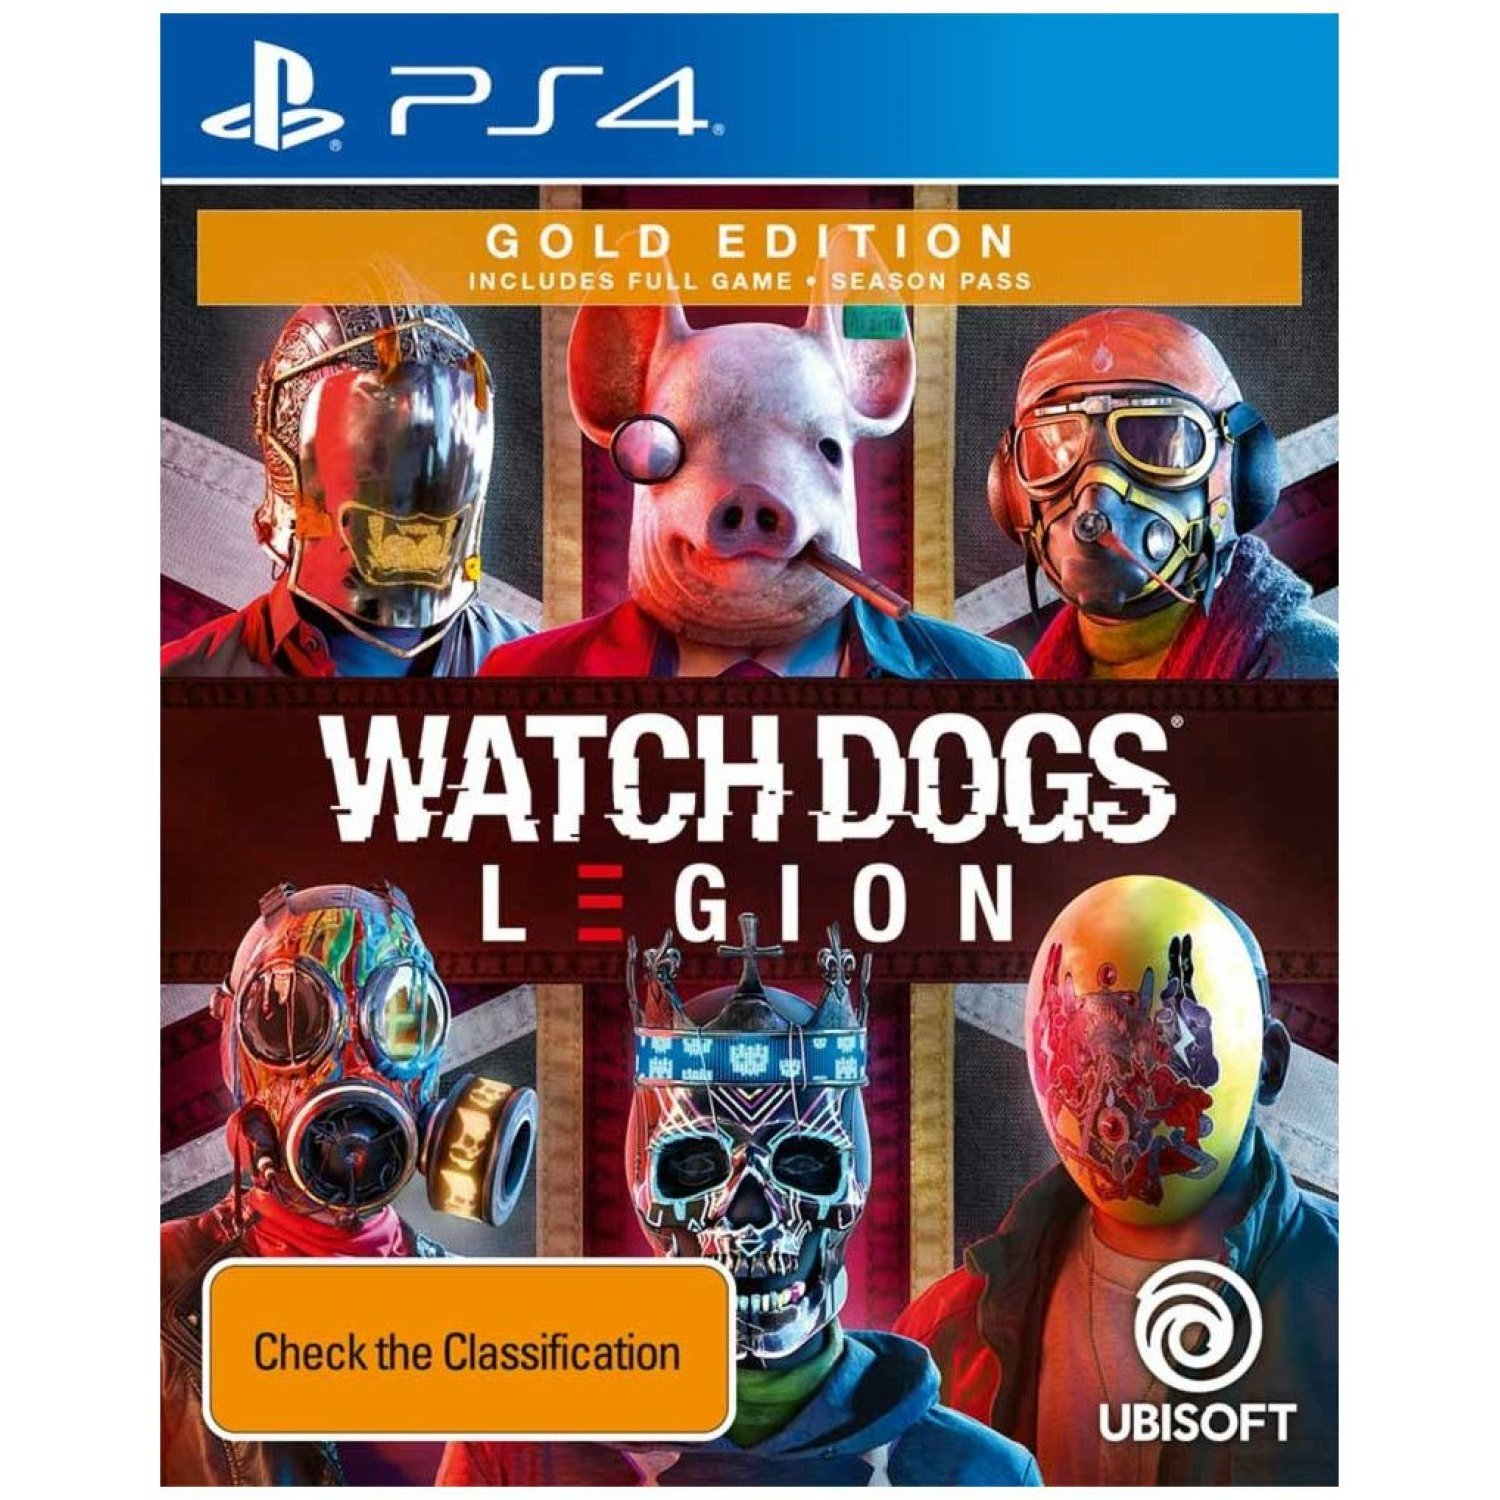 watch-dogs-legion-611169.13.jpg